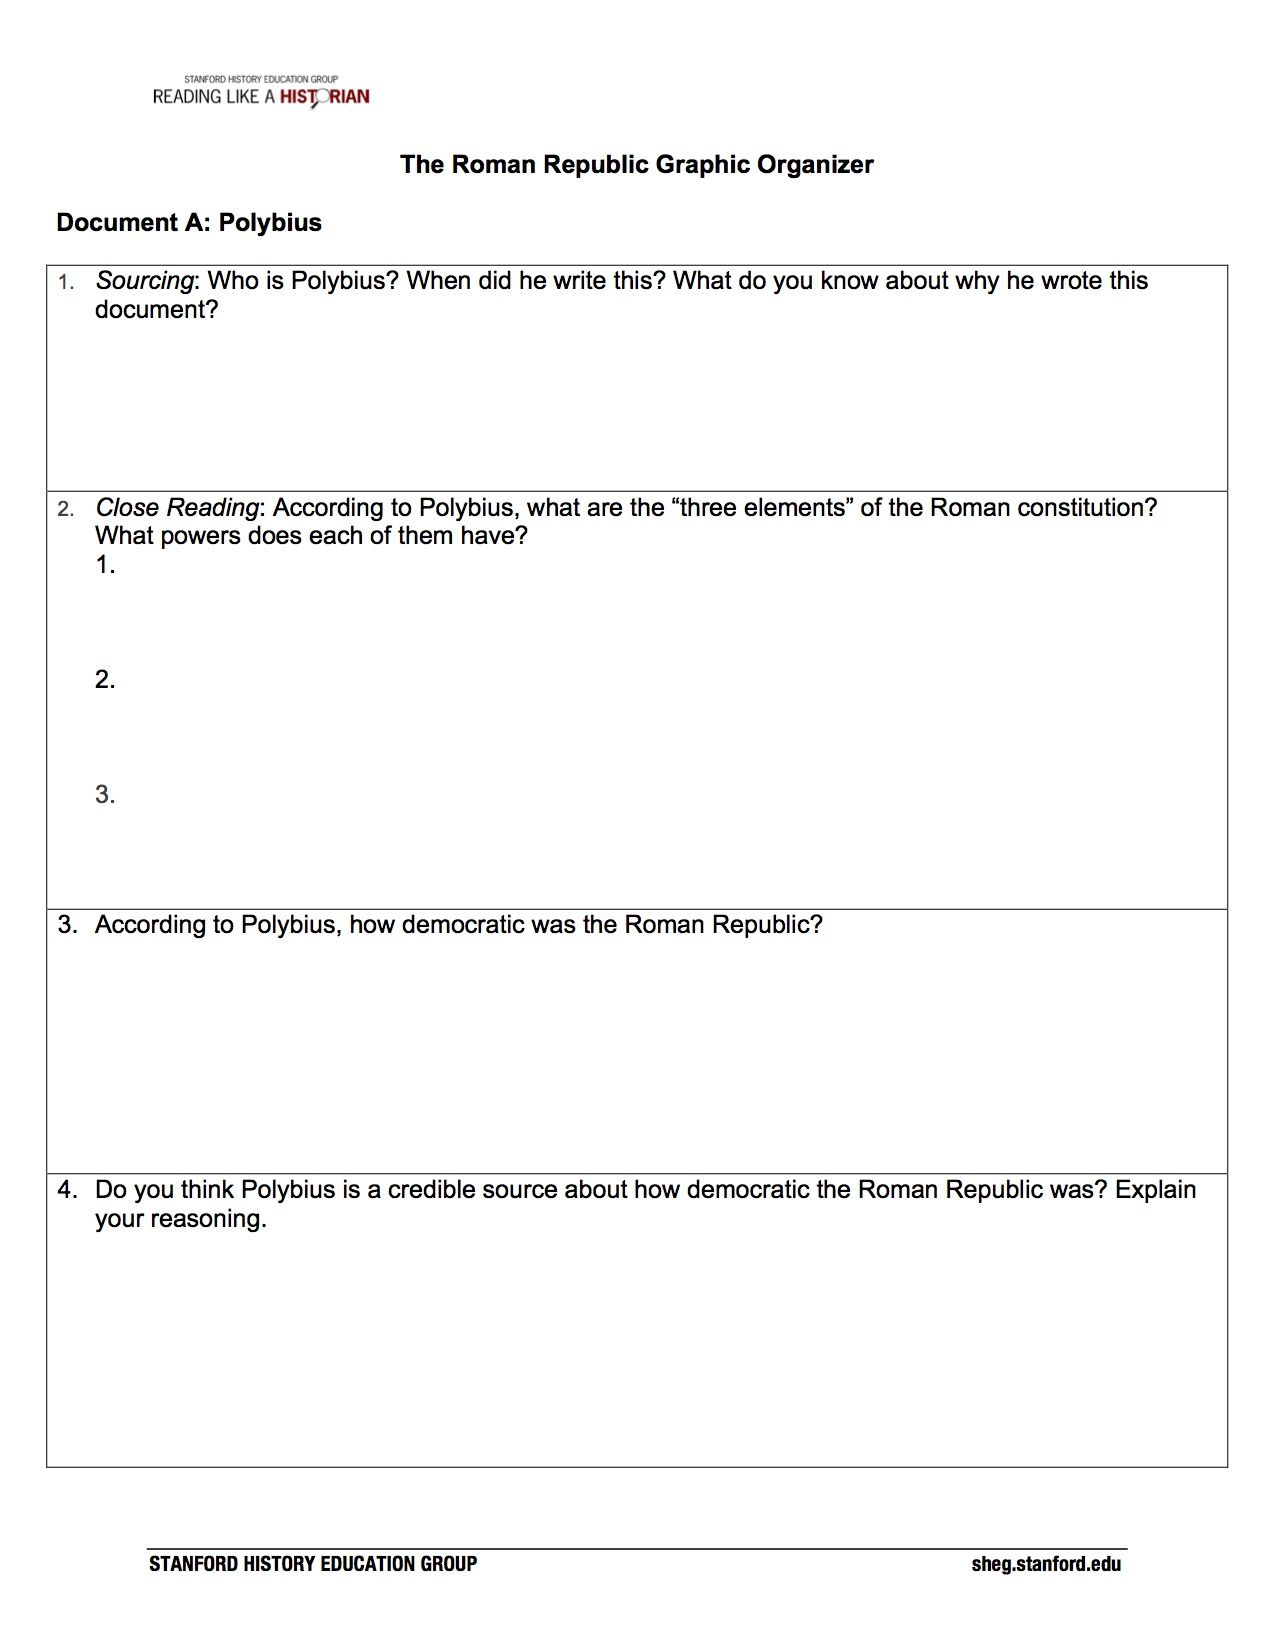 Stanford History Education Group Reading Like A Historian Worksheet Answers